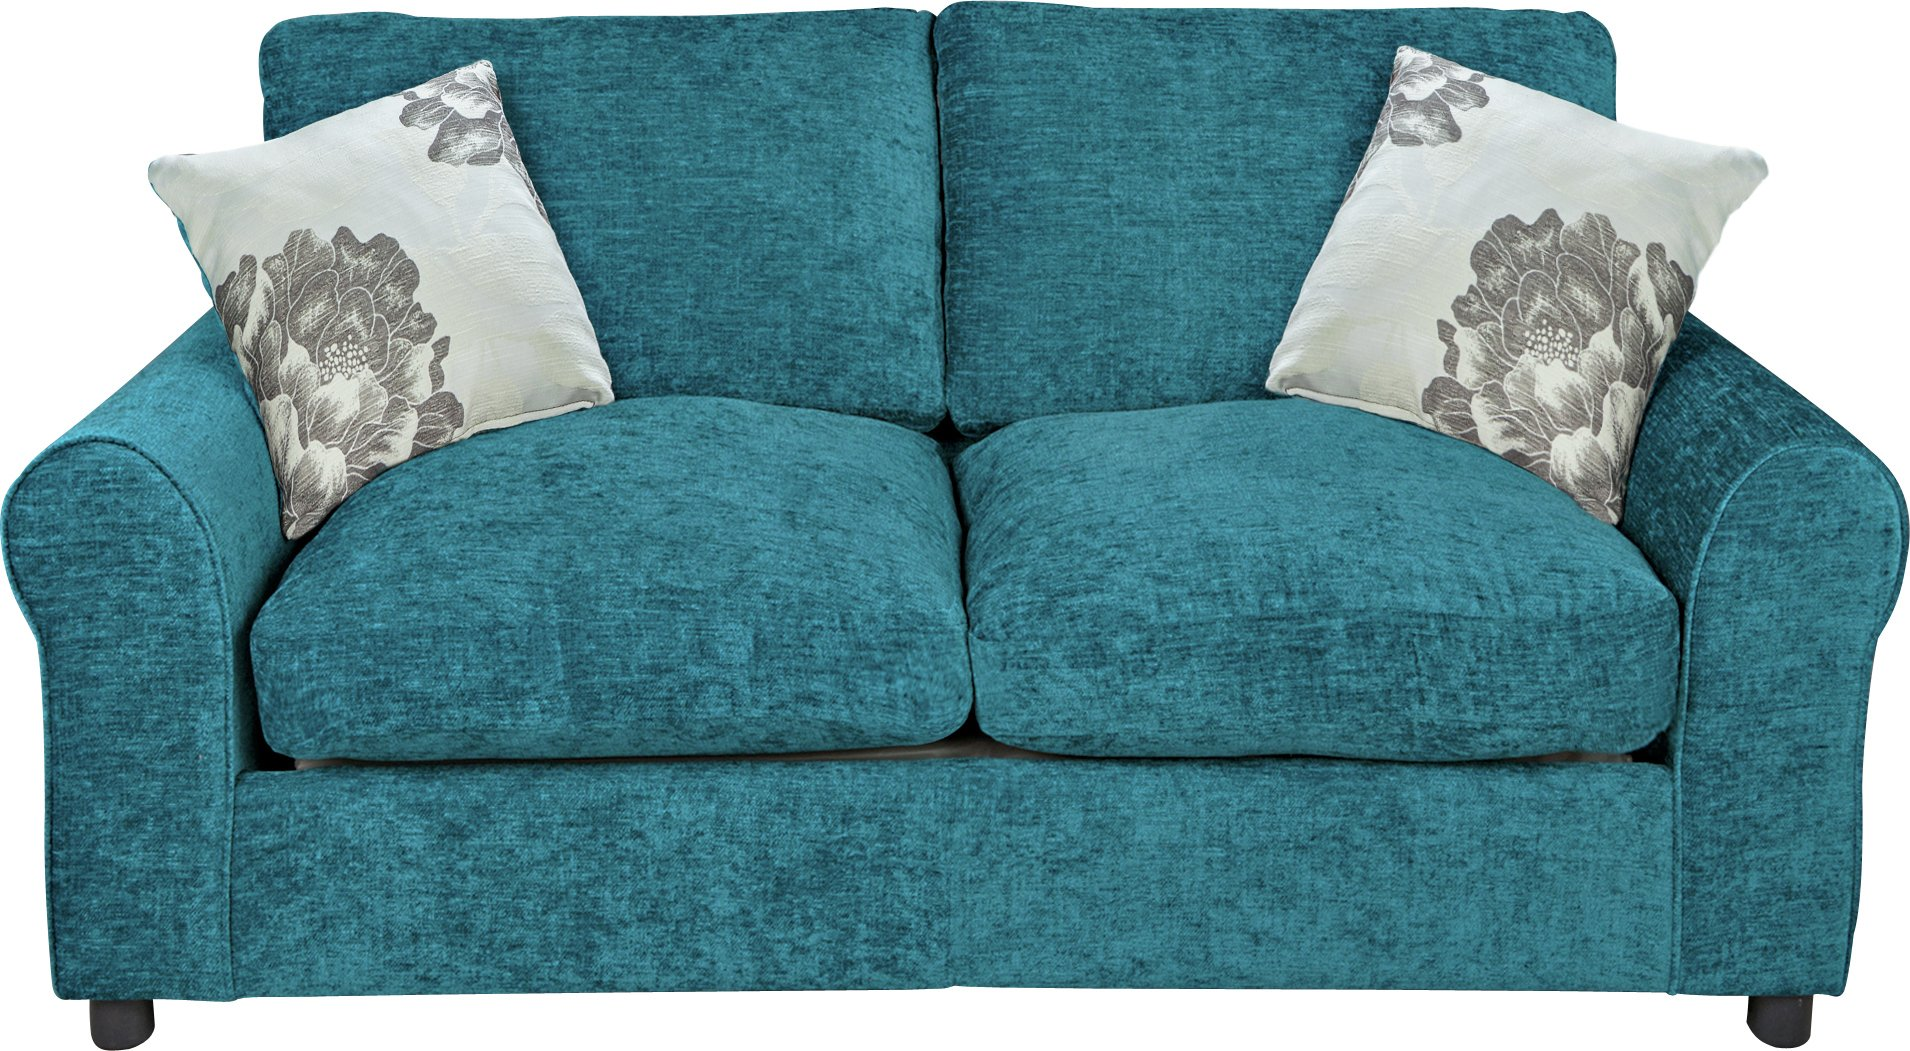 Buy HOME Tessa 2 Seater Fabric Sofa Bed - Teal at Argos.co ...